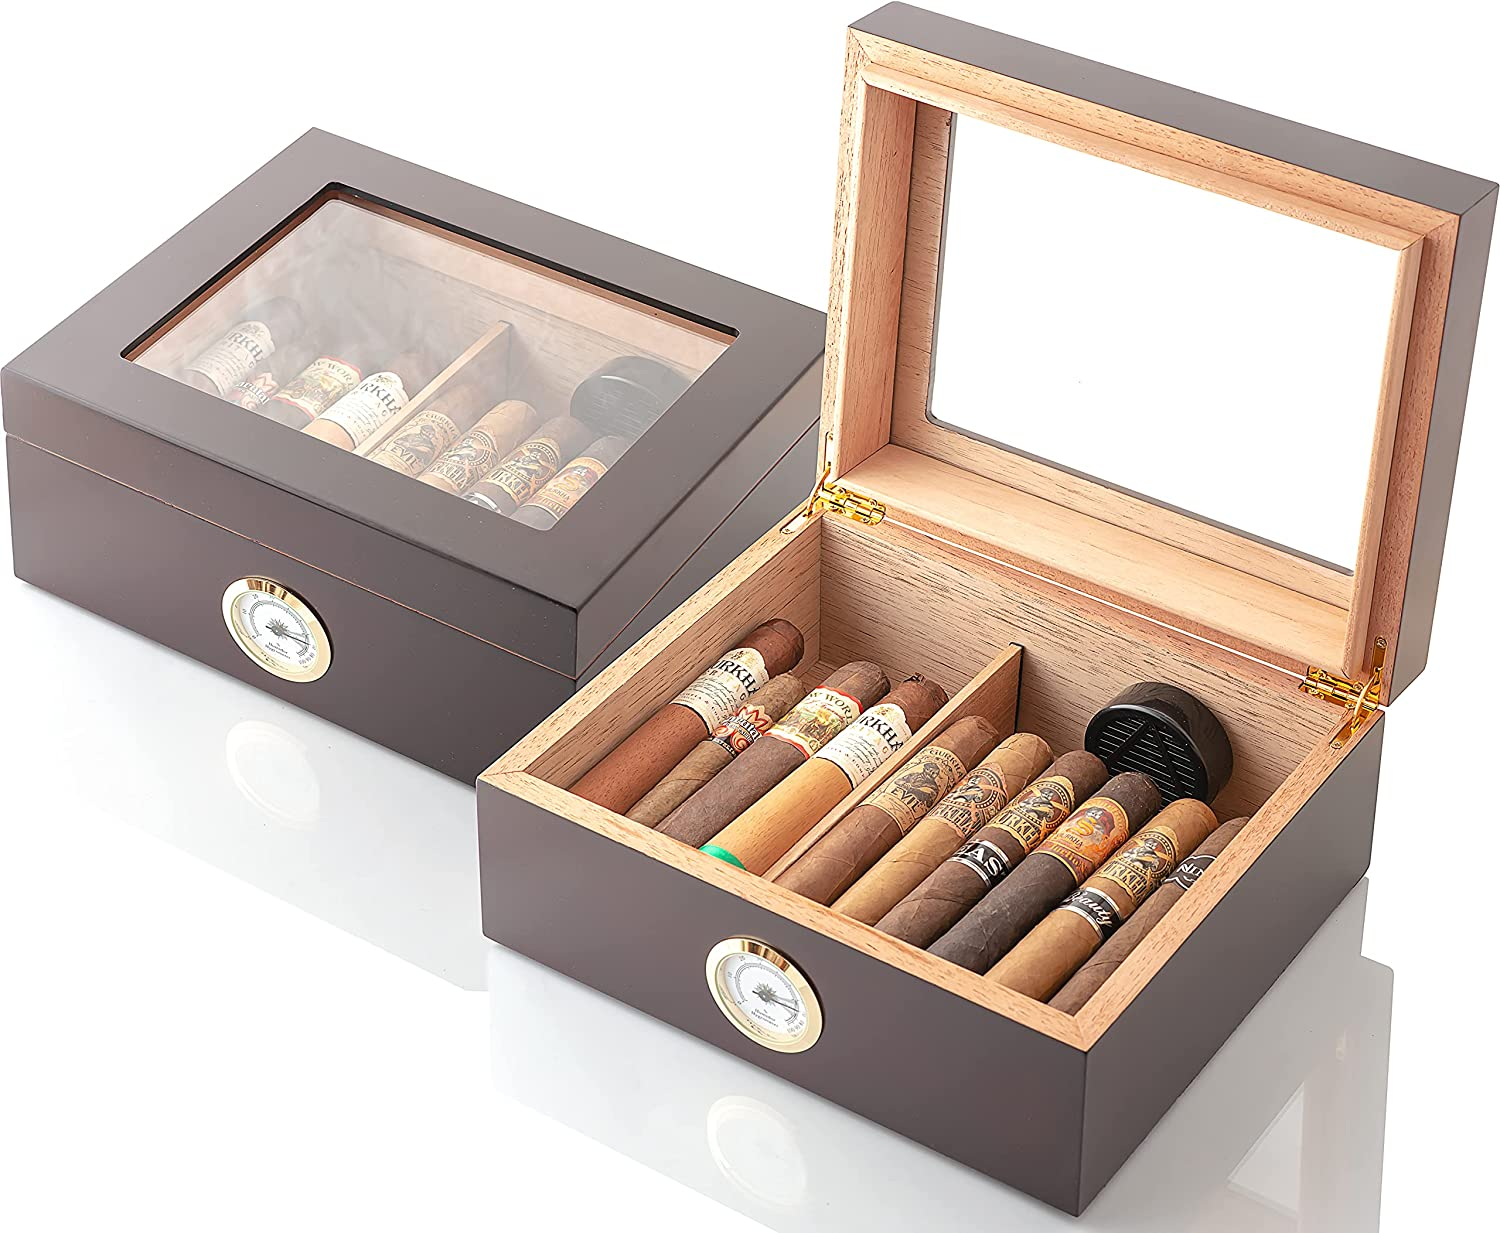 GlassTop Handcrafted Cigar Brand new Humidor Cigars 25-50 Gifts Indianapolis Mall -